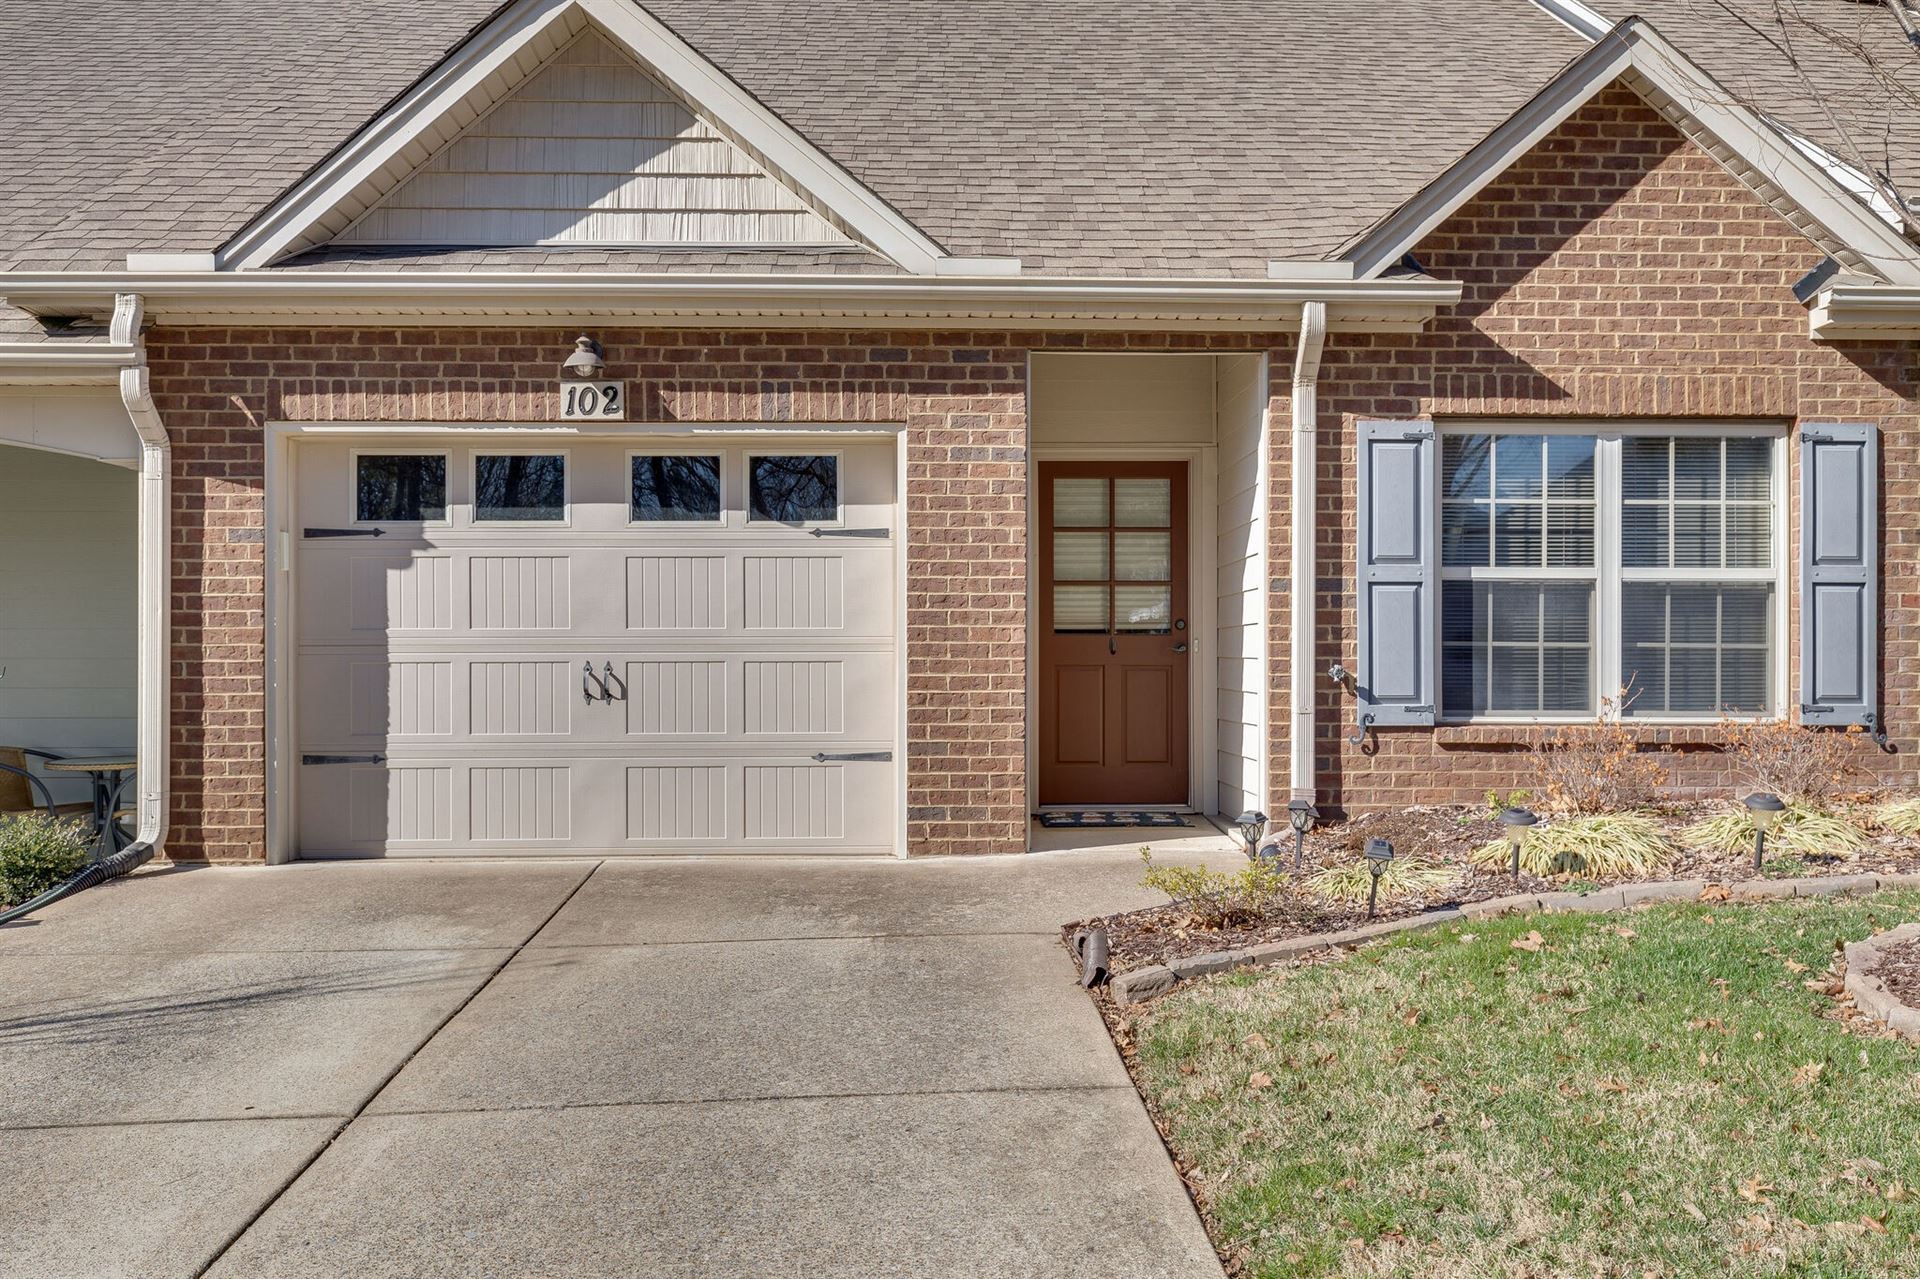 Photo of 102 Westview Dr, Spring Hill, TN 37174 (MLS # 2232594)